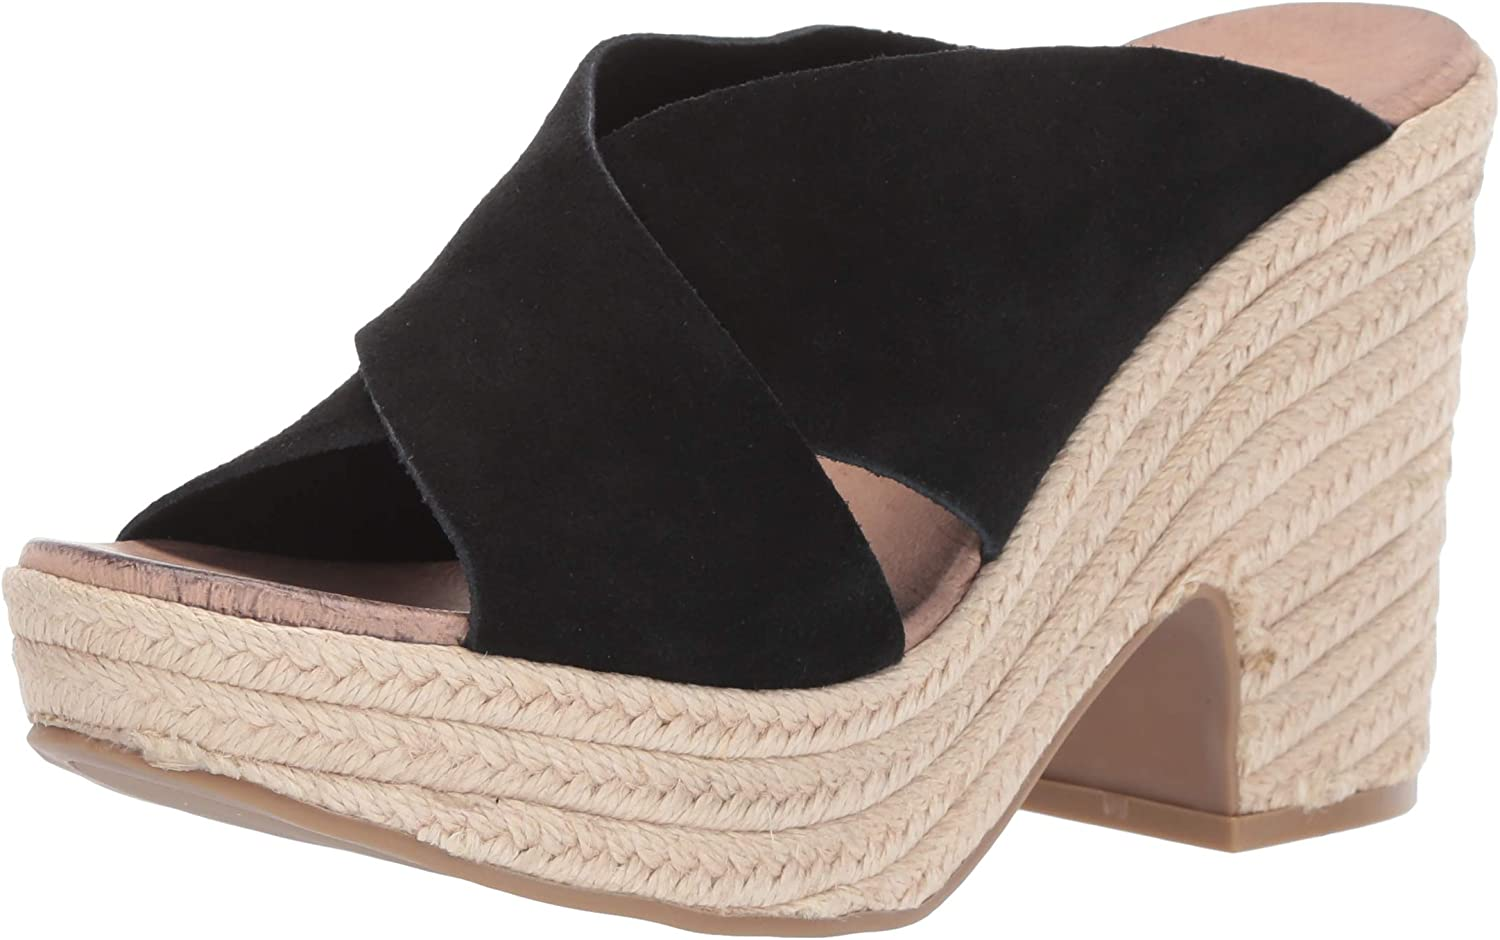 Chinese Laundry Women's Quay Espadrille Wedge Sandal